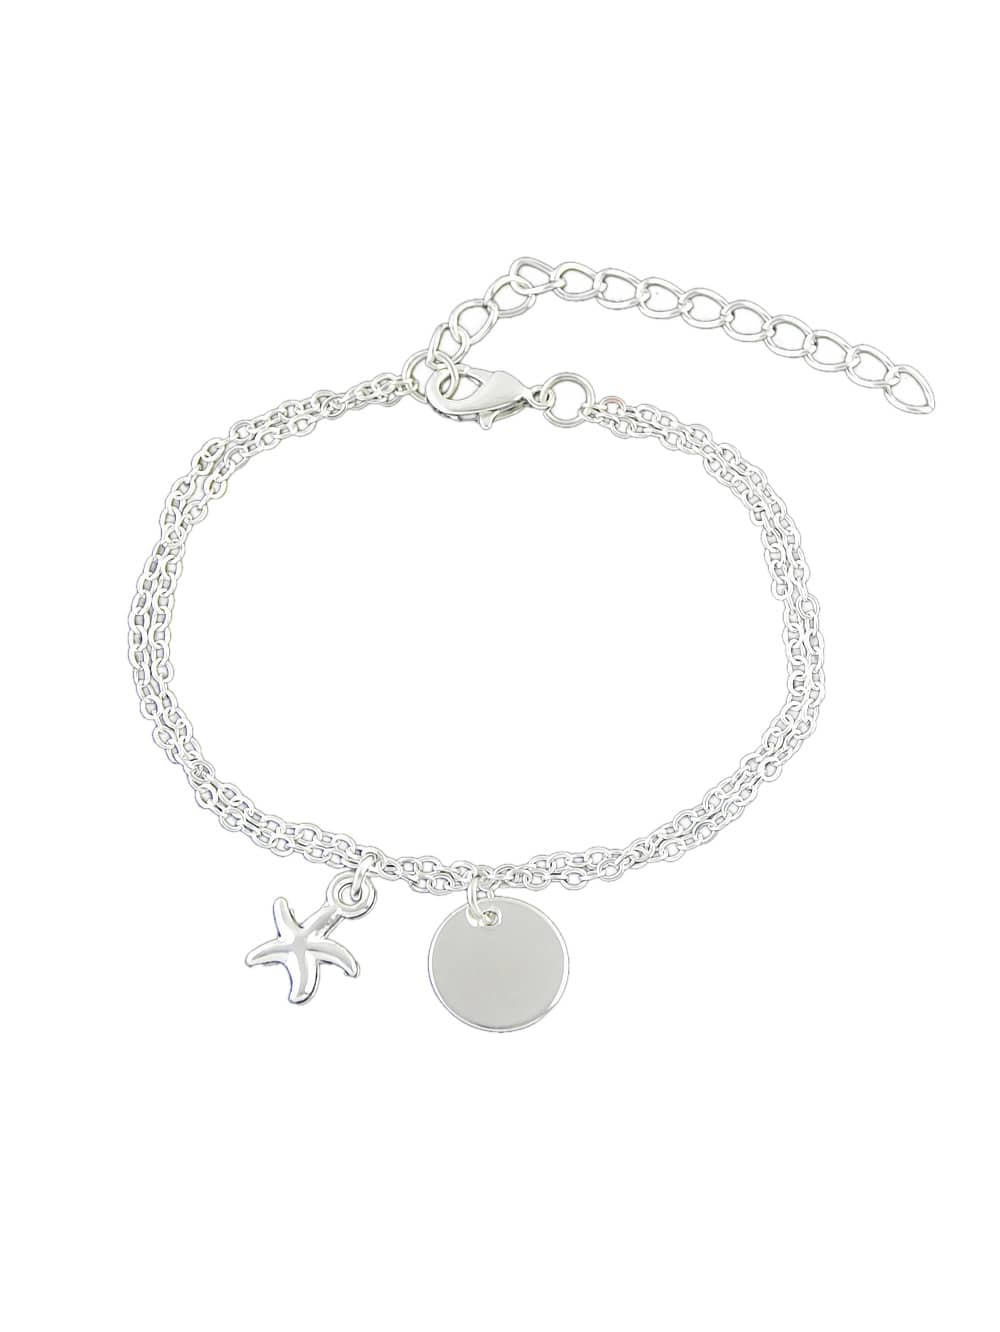 Silver Color Starfish Charm Chain Link Bracelets